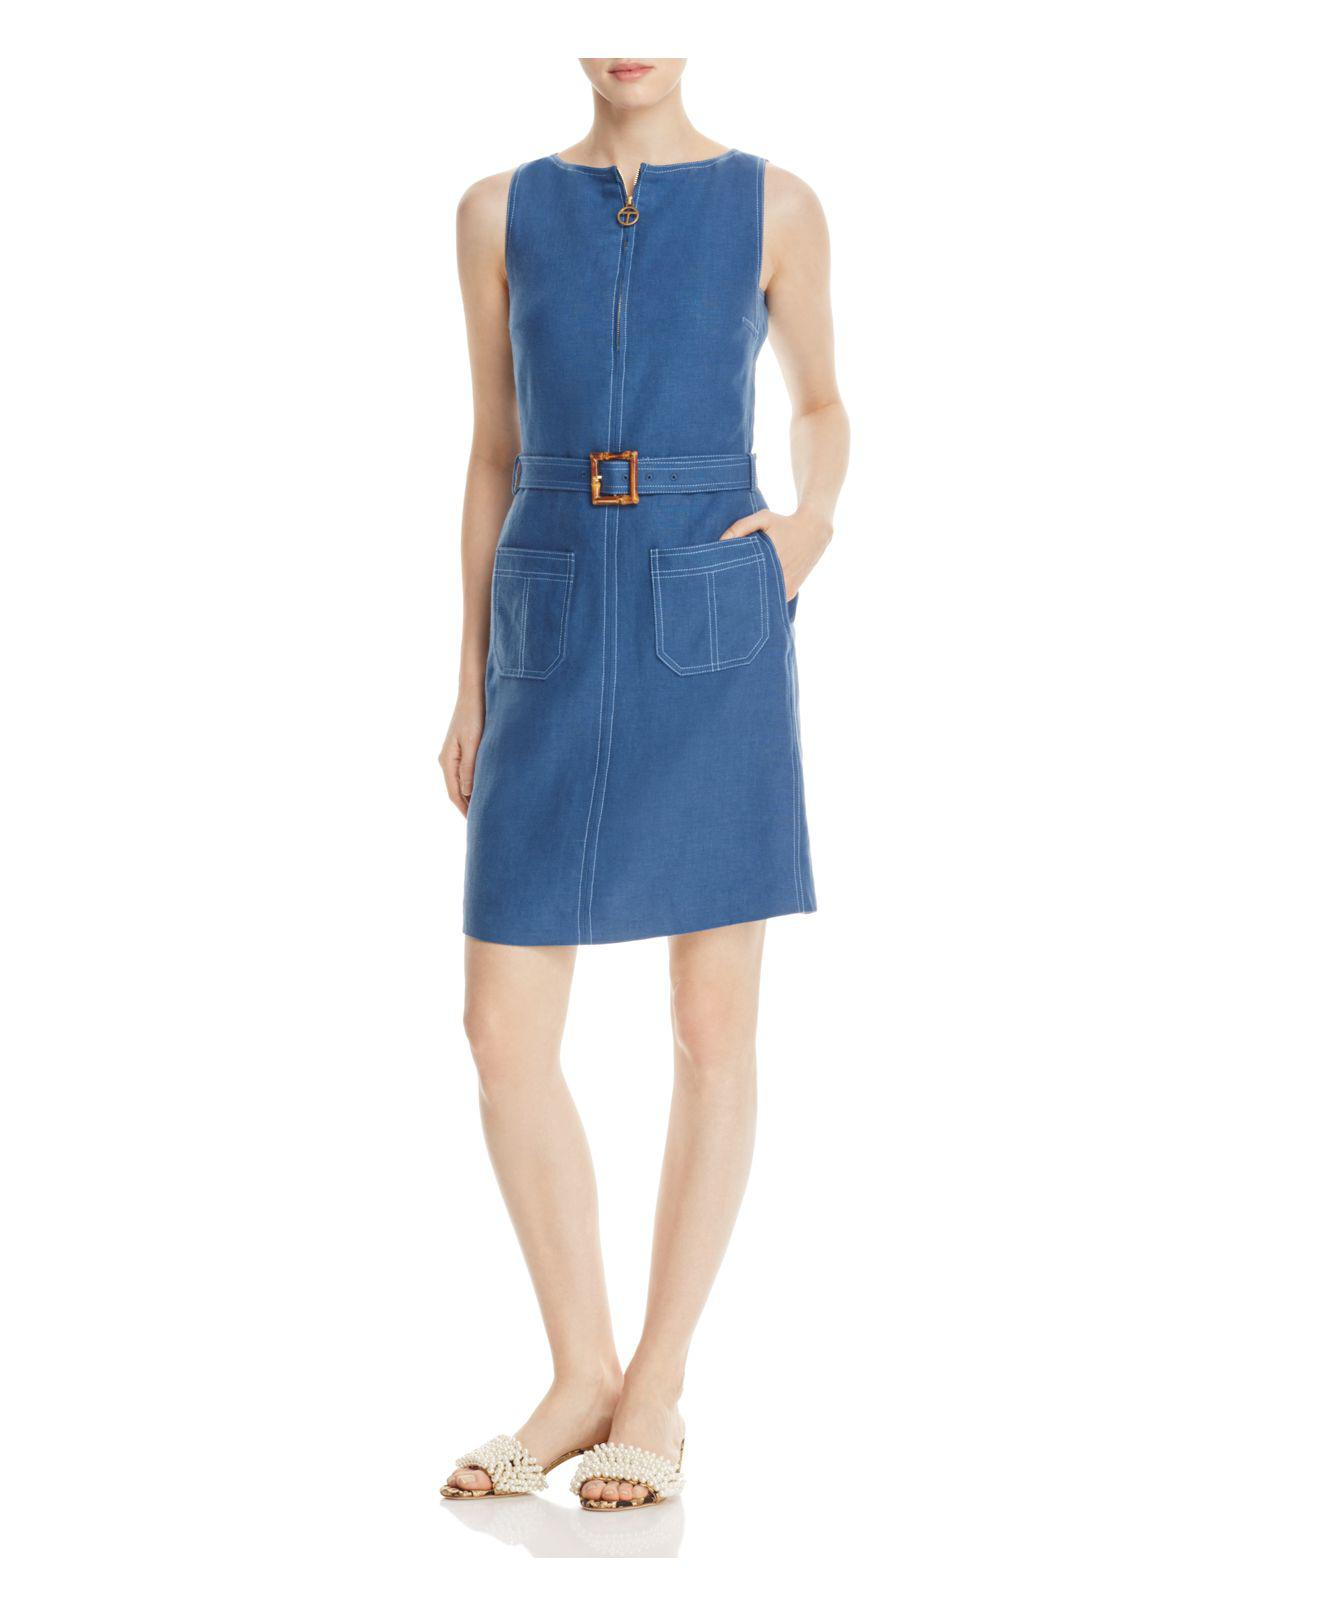 e1b294d3386 Tory Burch Nadia Dress in Blue - Lyst